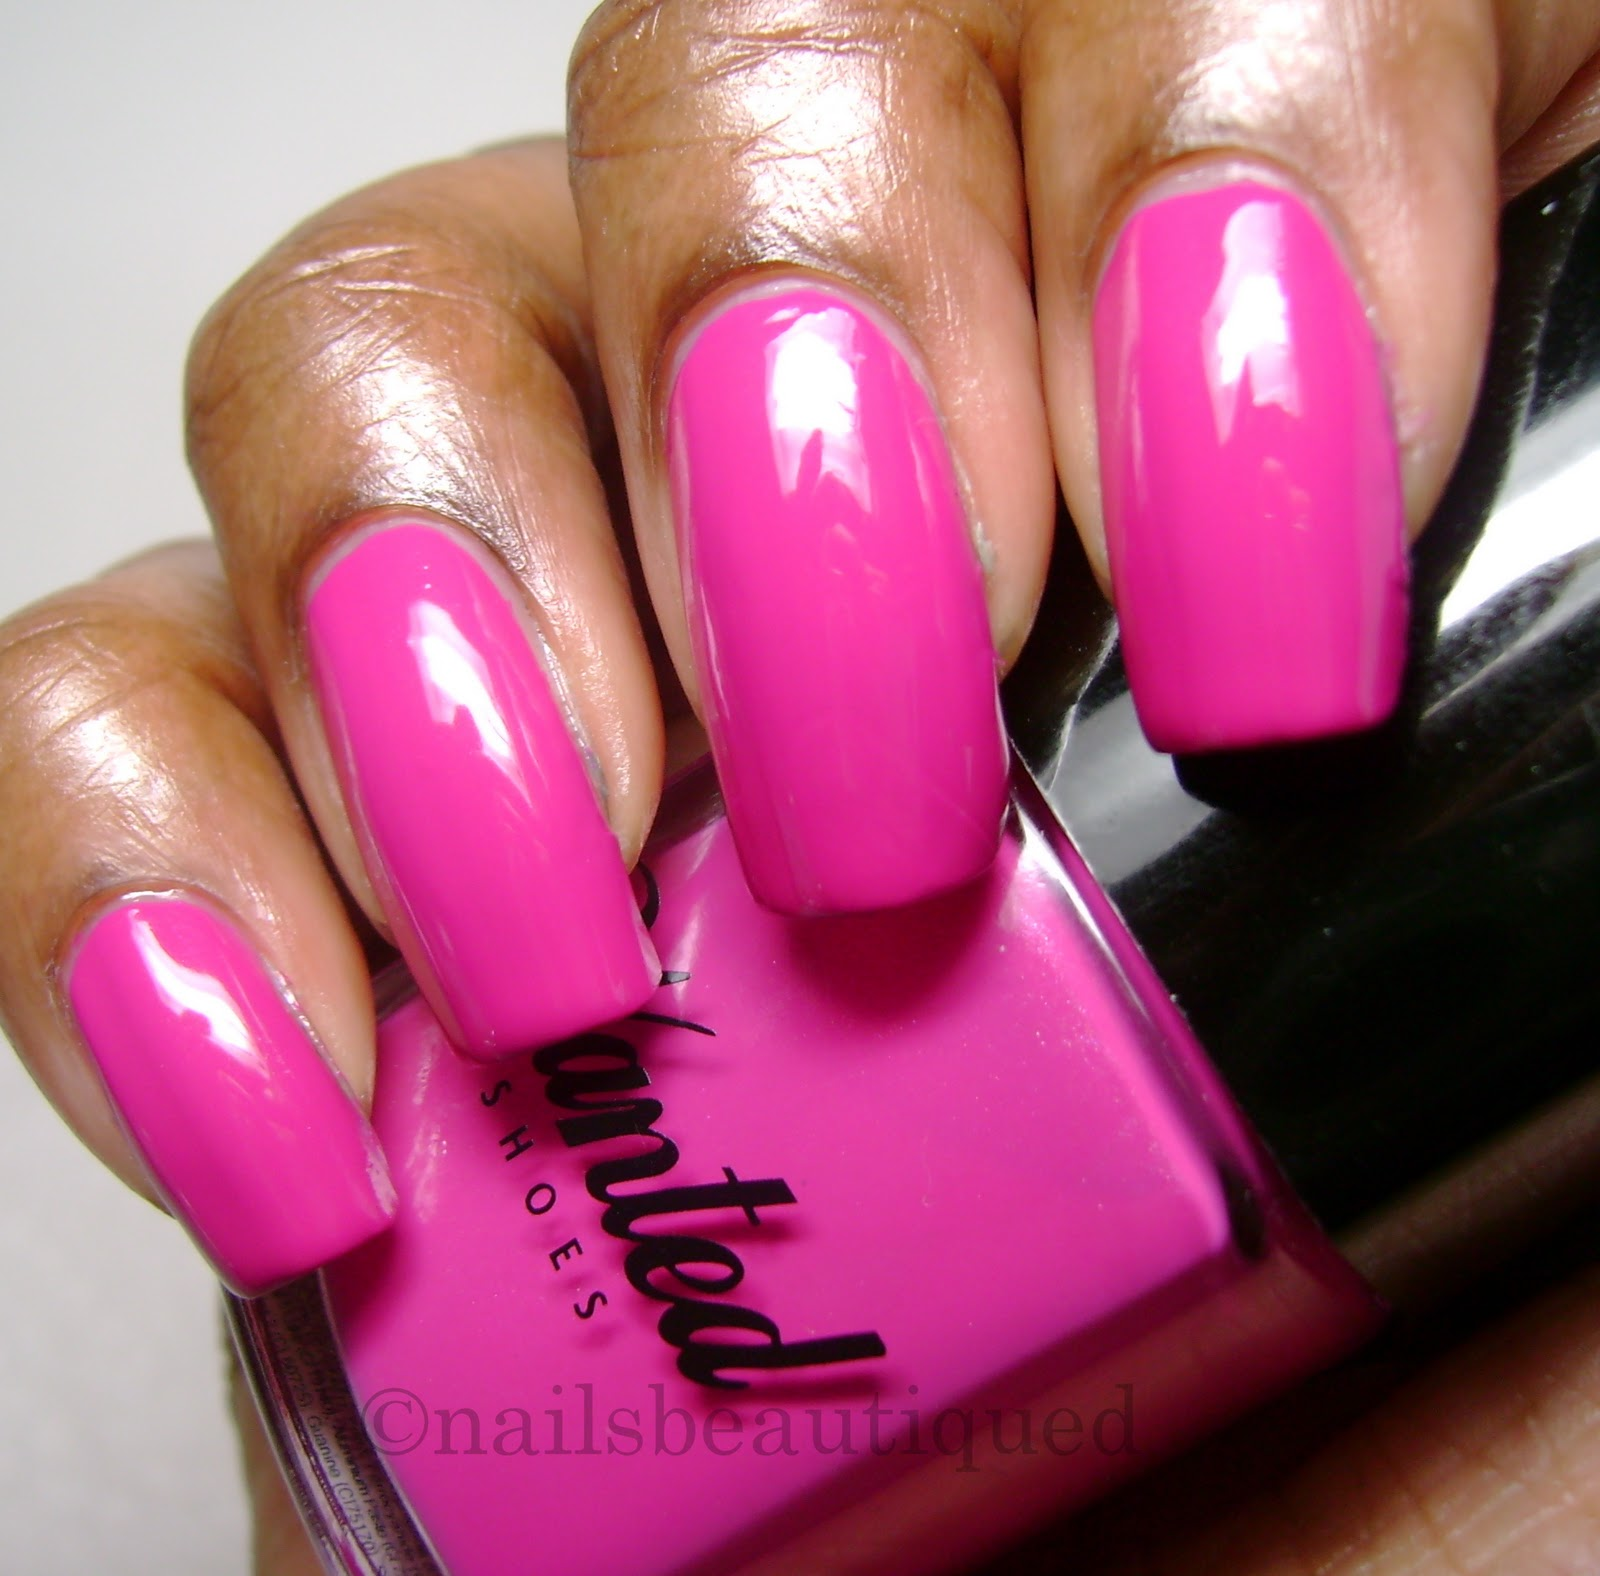 acrylic nails to stop picking photo - 1